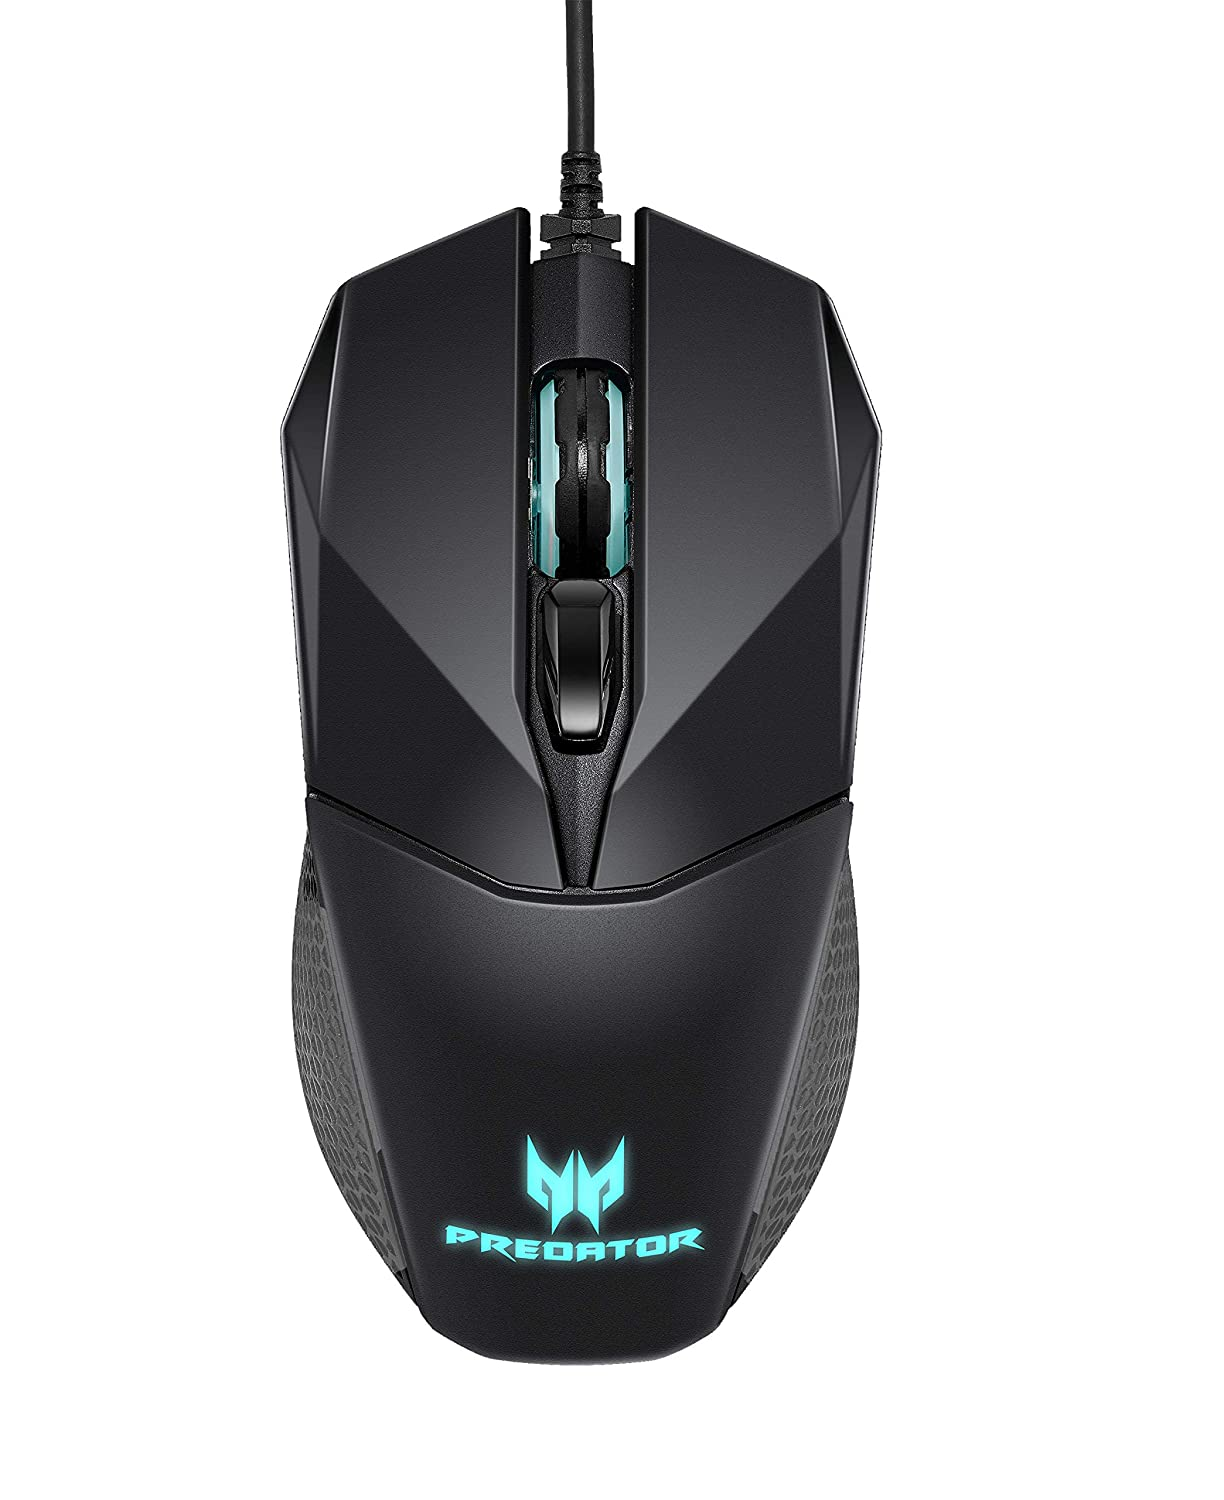 Acer Predator Cestus 300 RGB Gaming Mouse Dual Omron switches 70M click lifetime, On board memory and programmable buttons